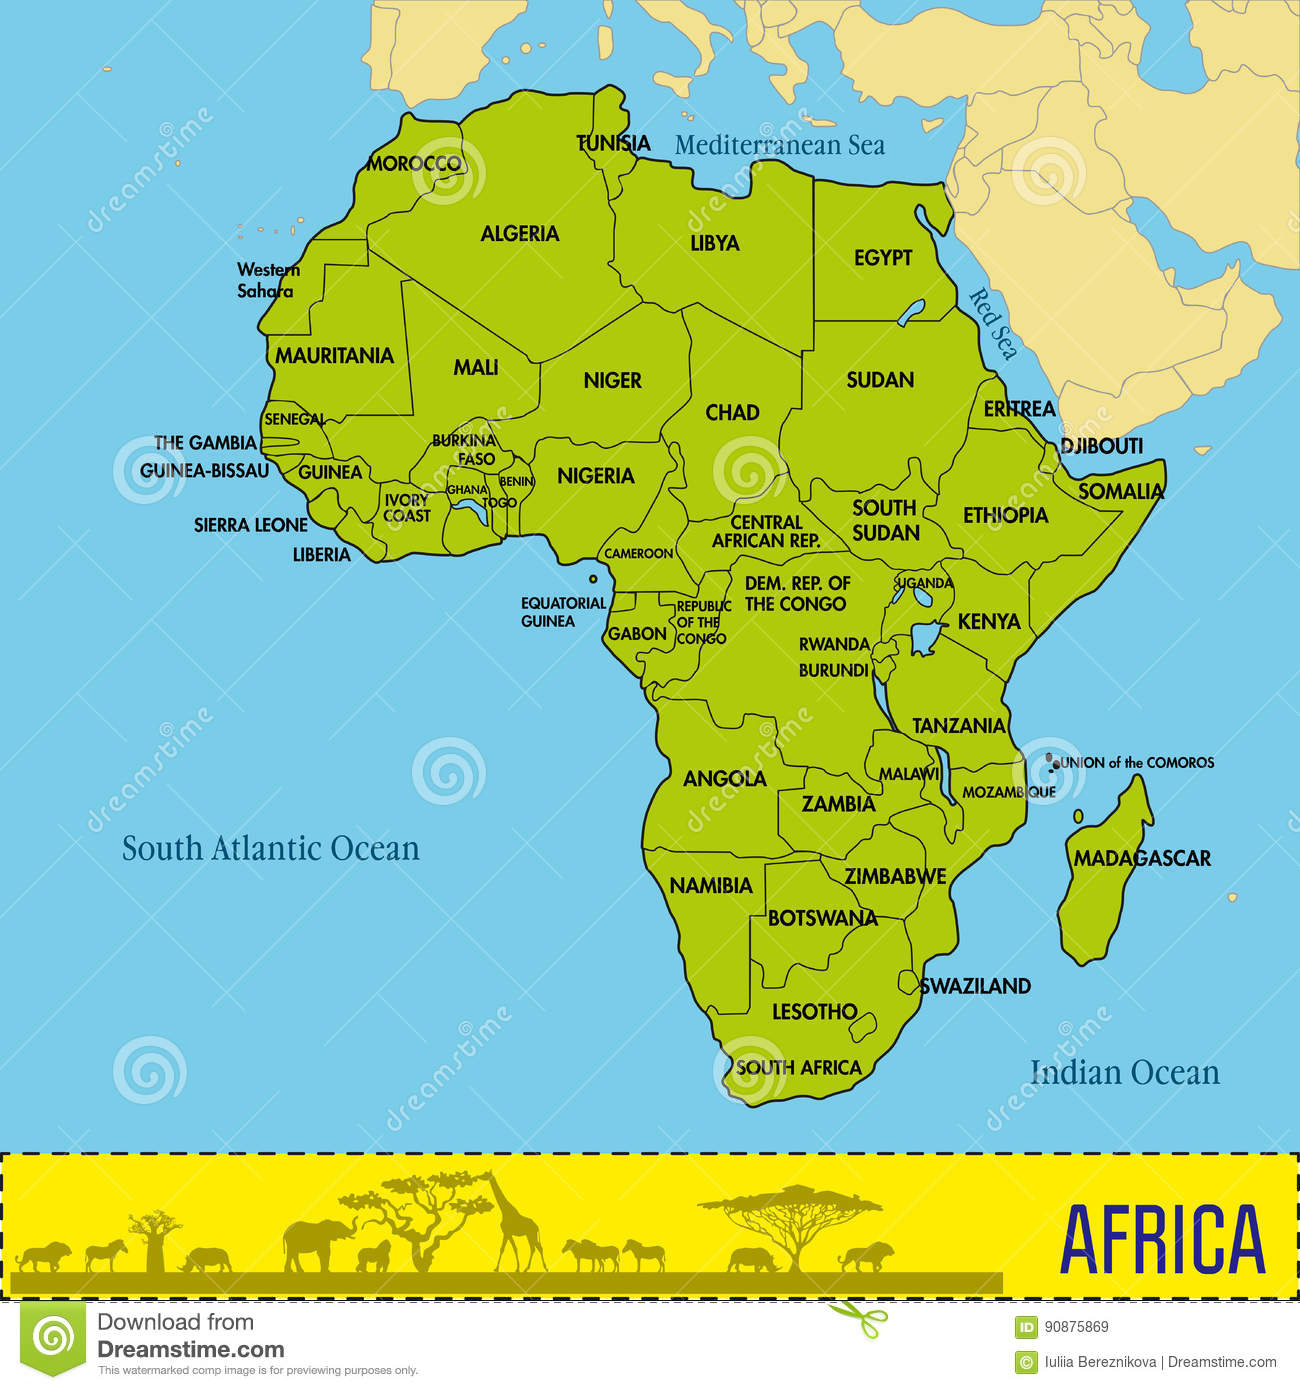 Map Of Africa With Countries And Capitals.Map Of Africa With All Countries And Their Capitals Stock Vector